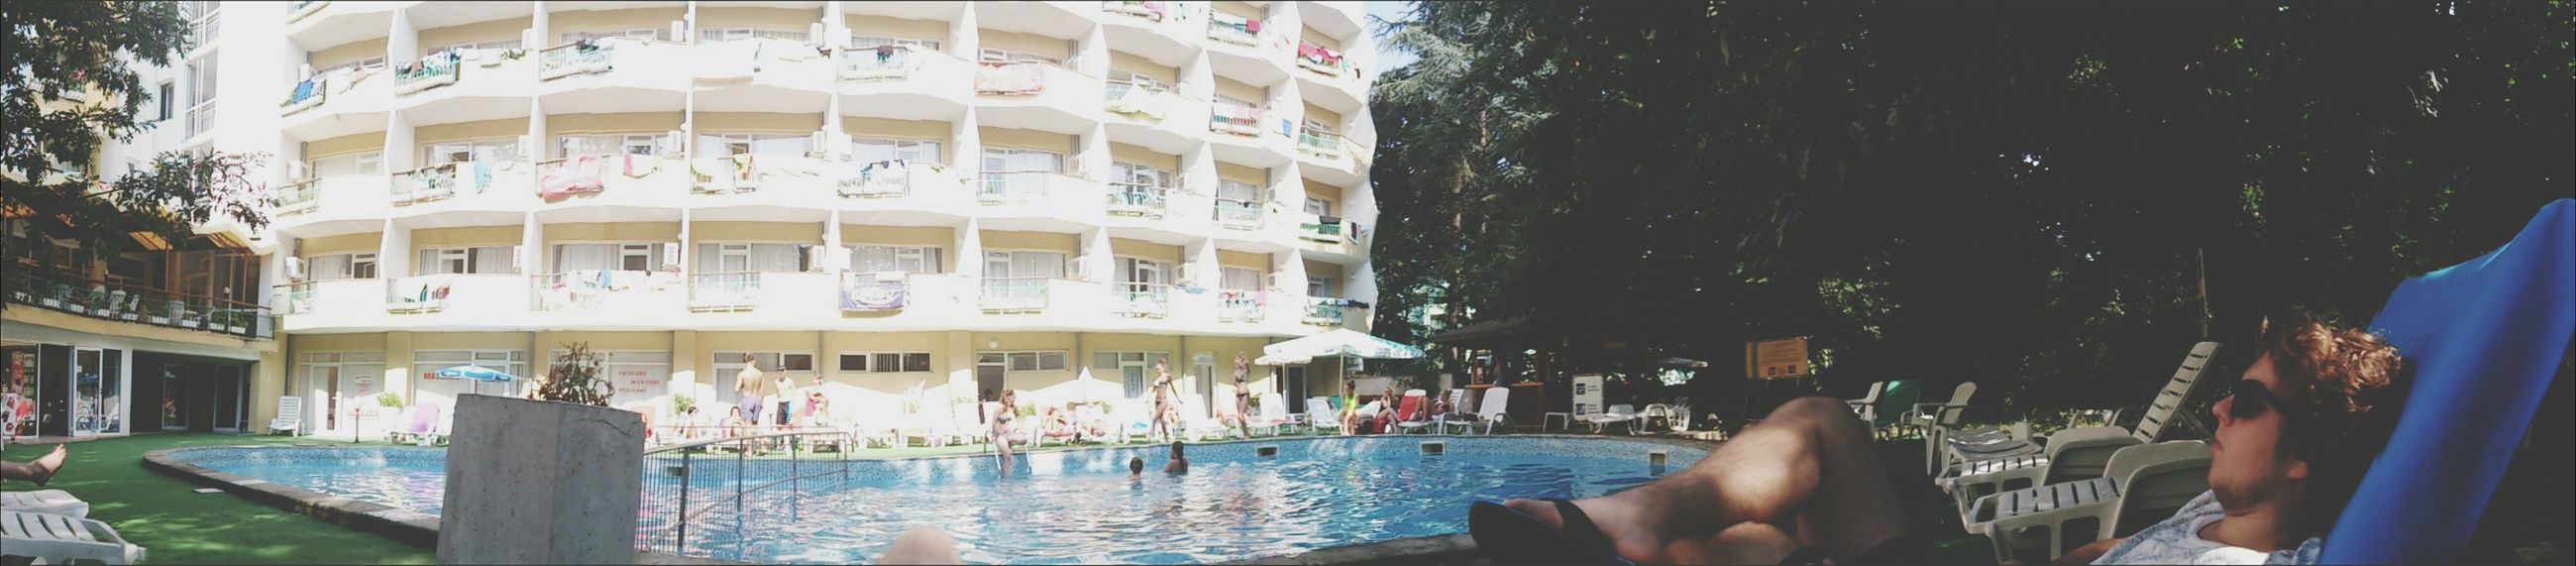 Goldensands Hotel Pool ChillTime